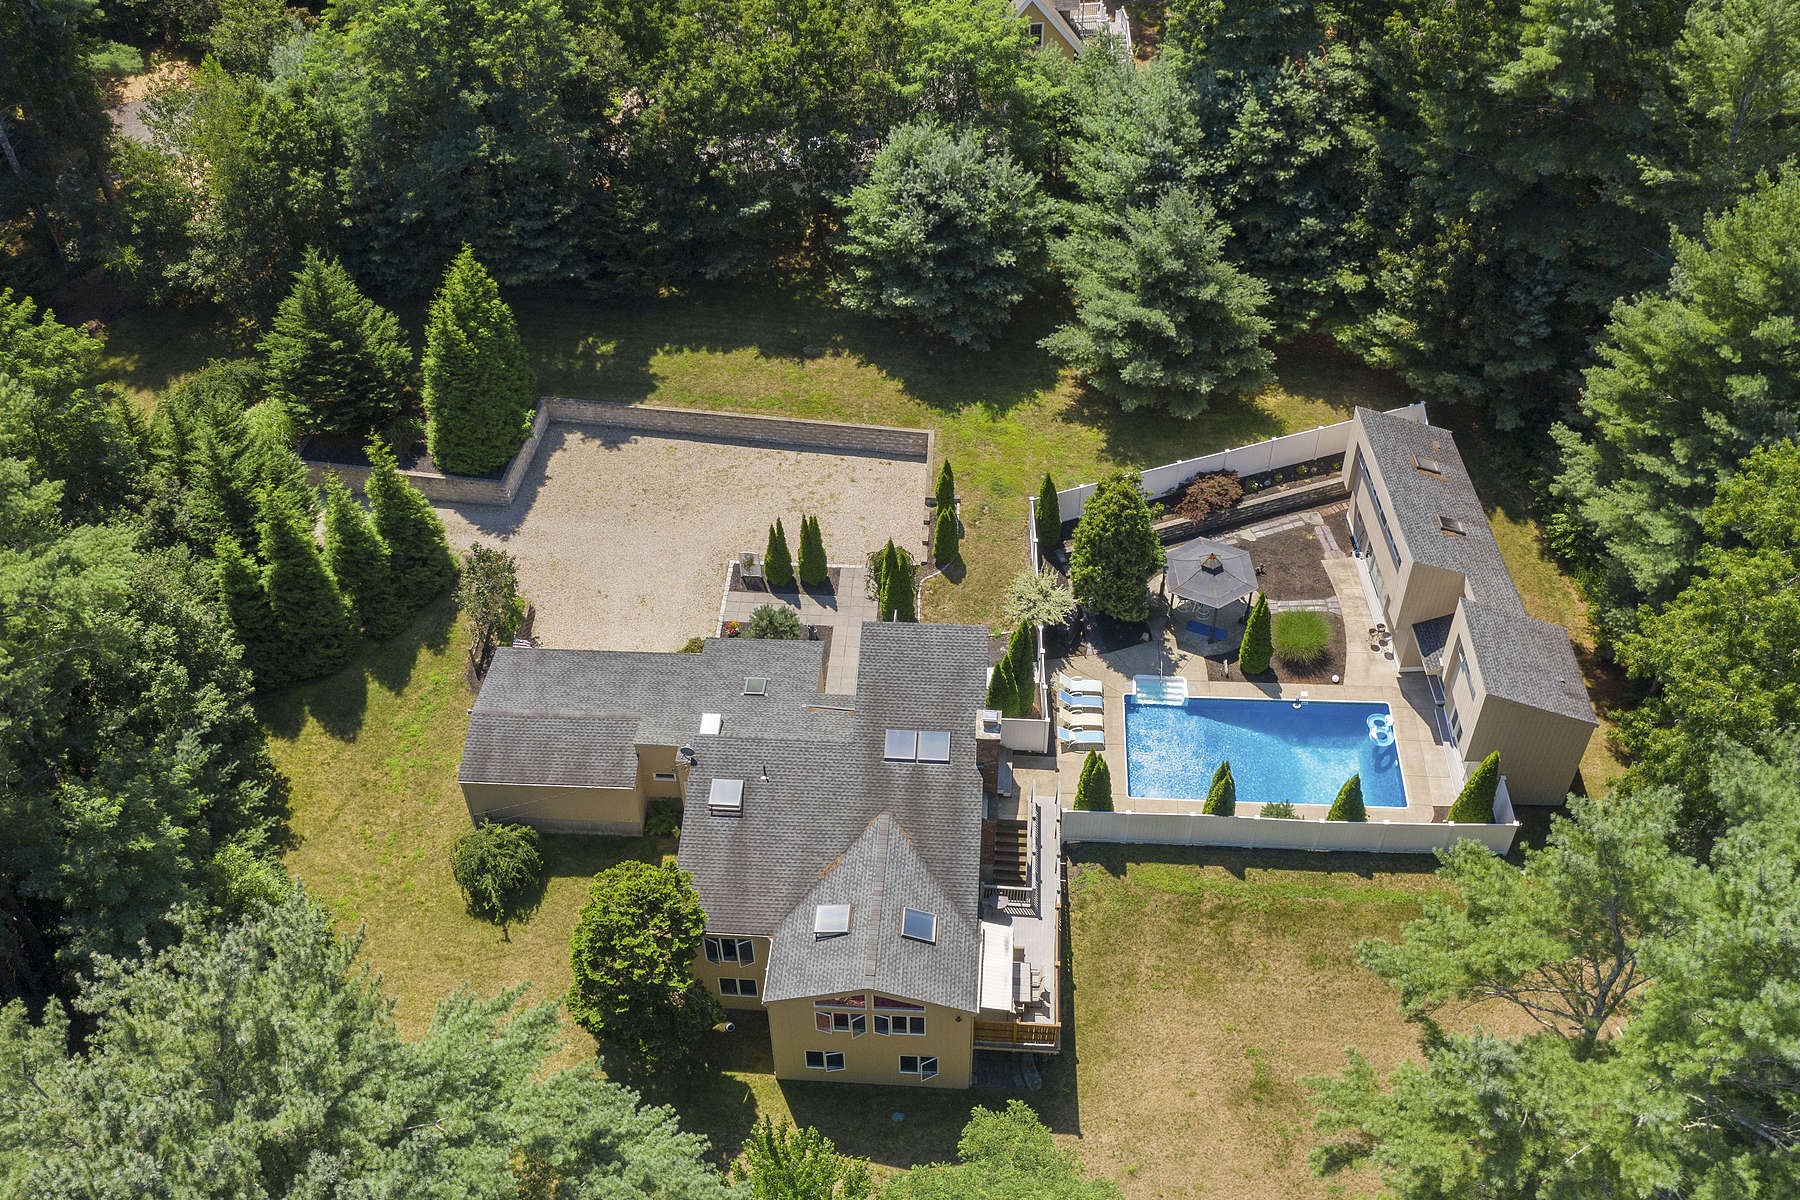 Single Family Homes for Sale at Private Mid-Century Modern 52 School Street Duxbury, Massachusetts 02332 United States